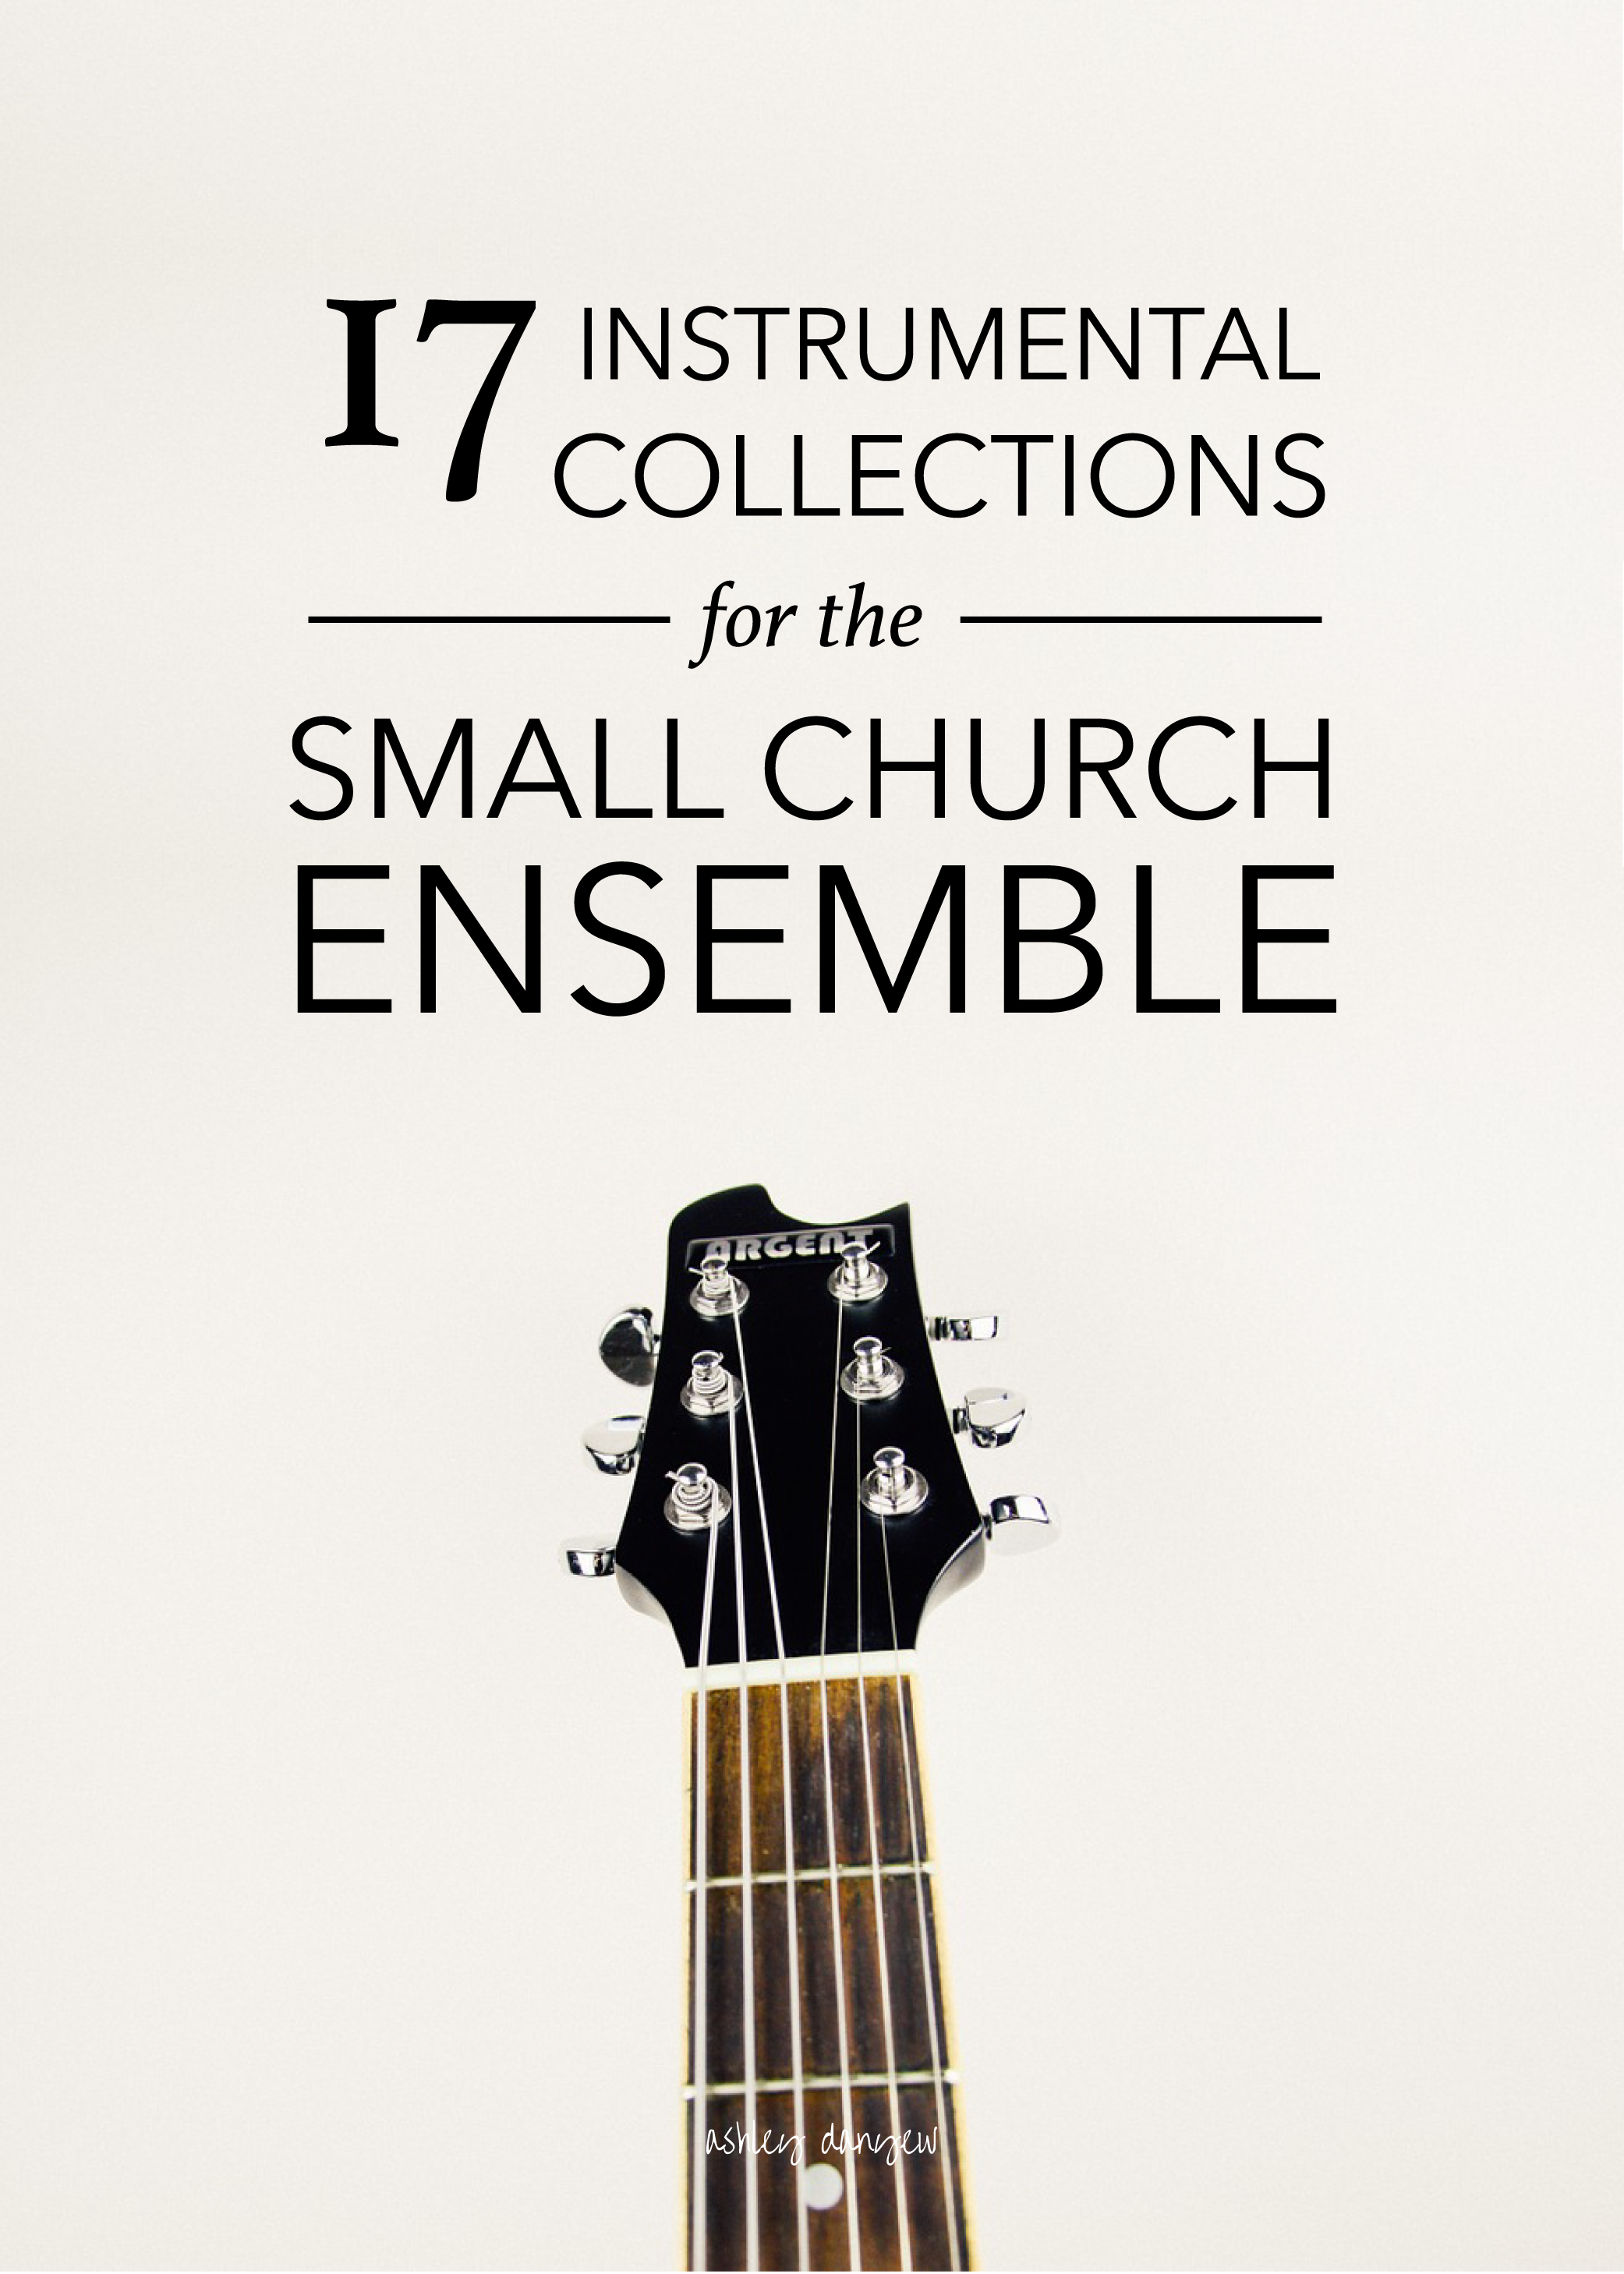 17-Instrumental-Collections-for-the-Small-Church-Ensemble-01.png